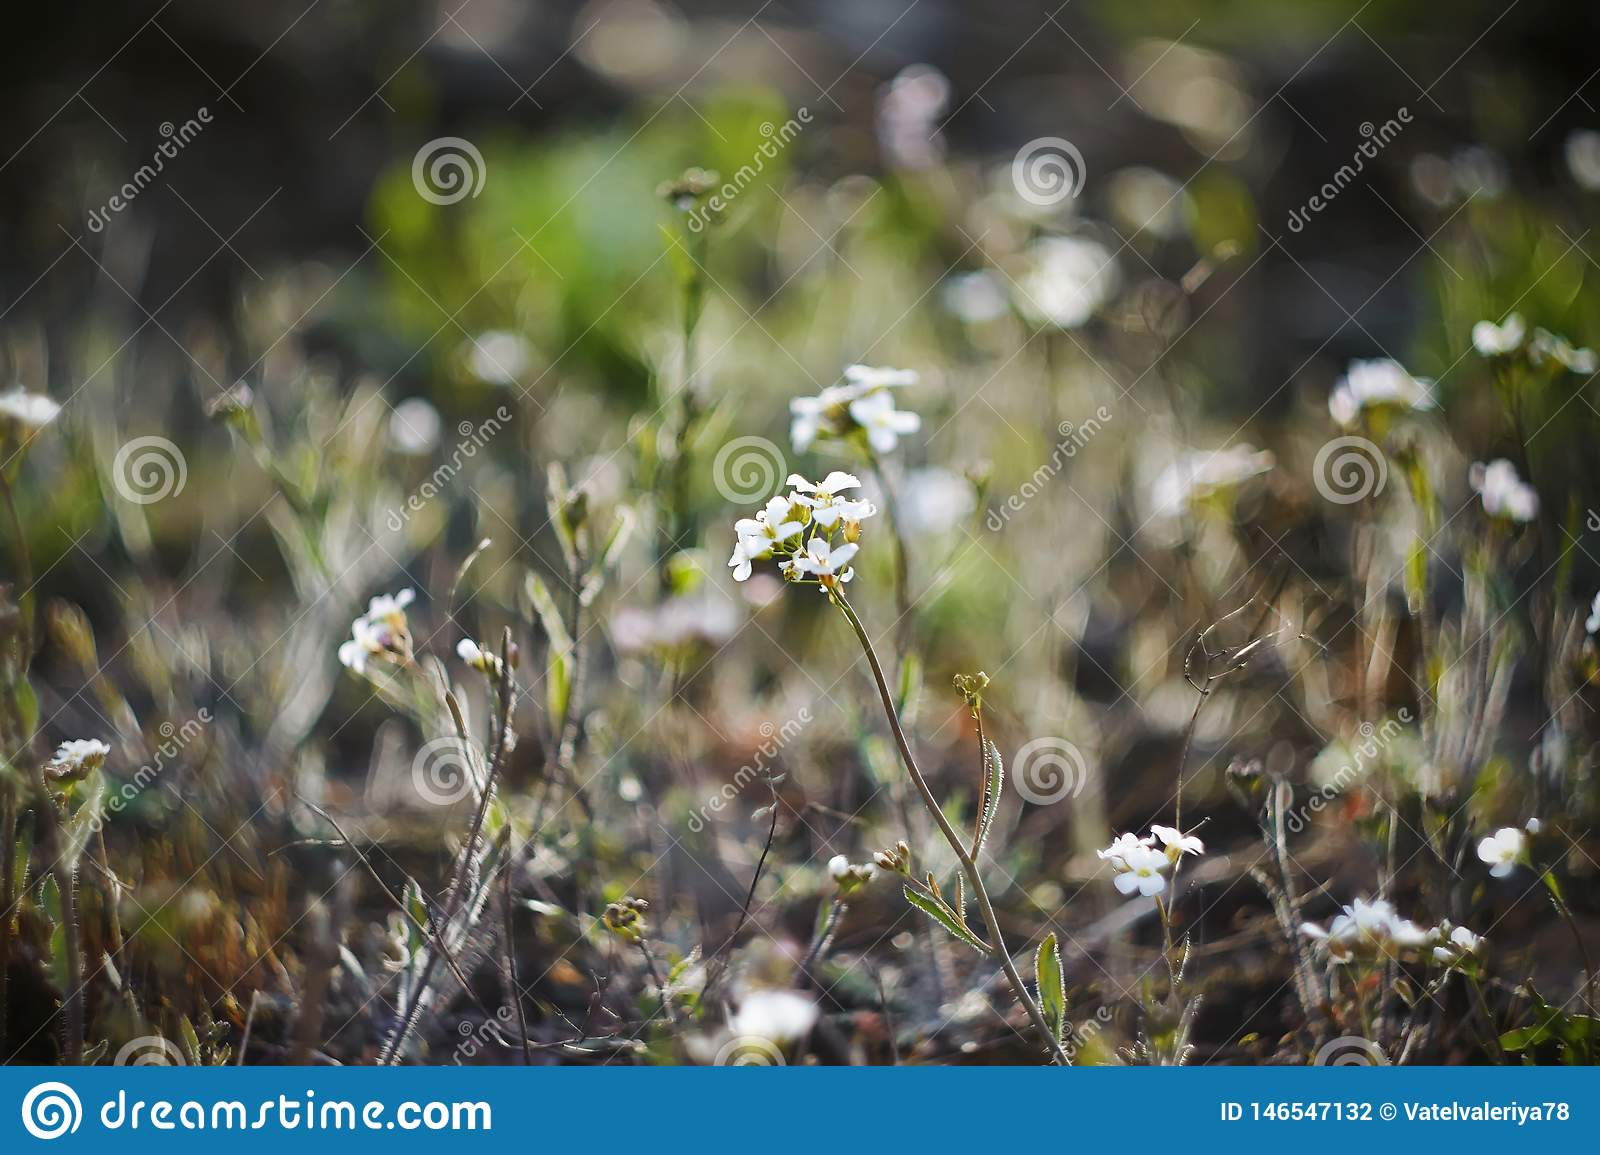 Small white delicate spring flowers